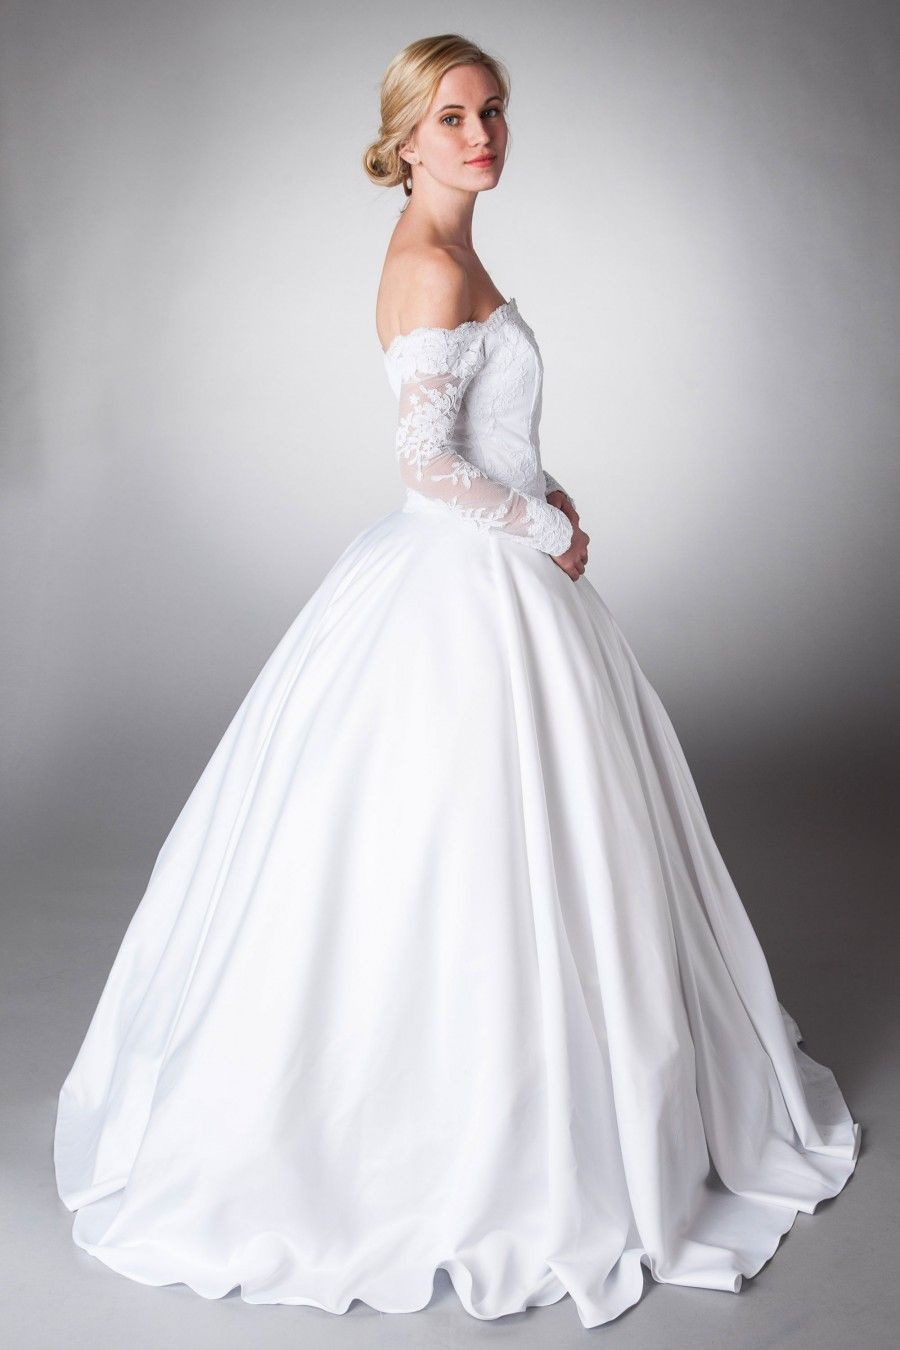 Morgia Bridal Couture